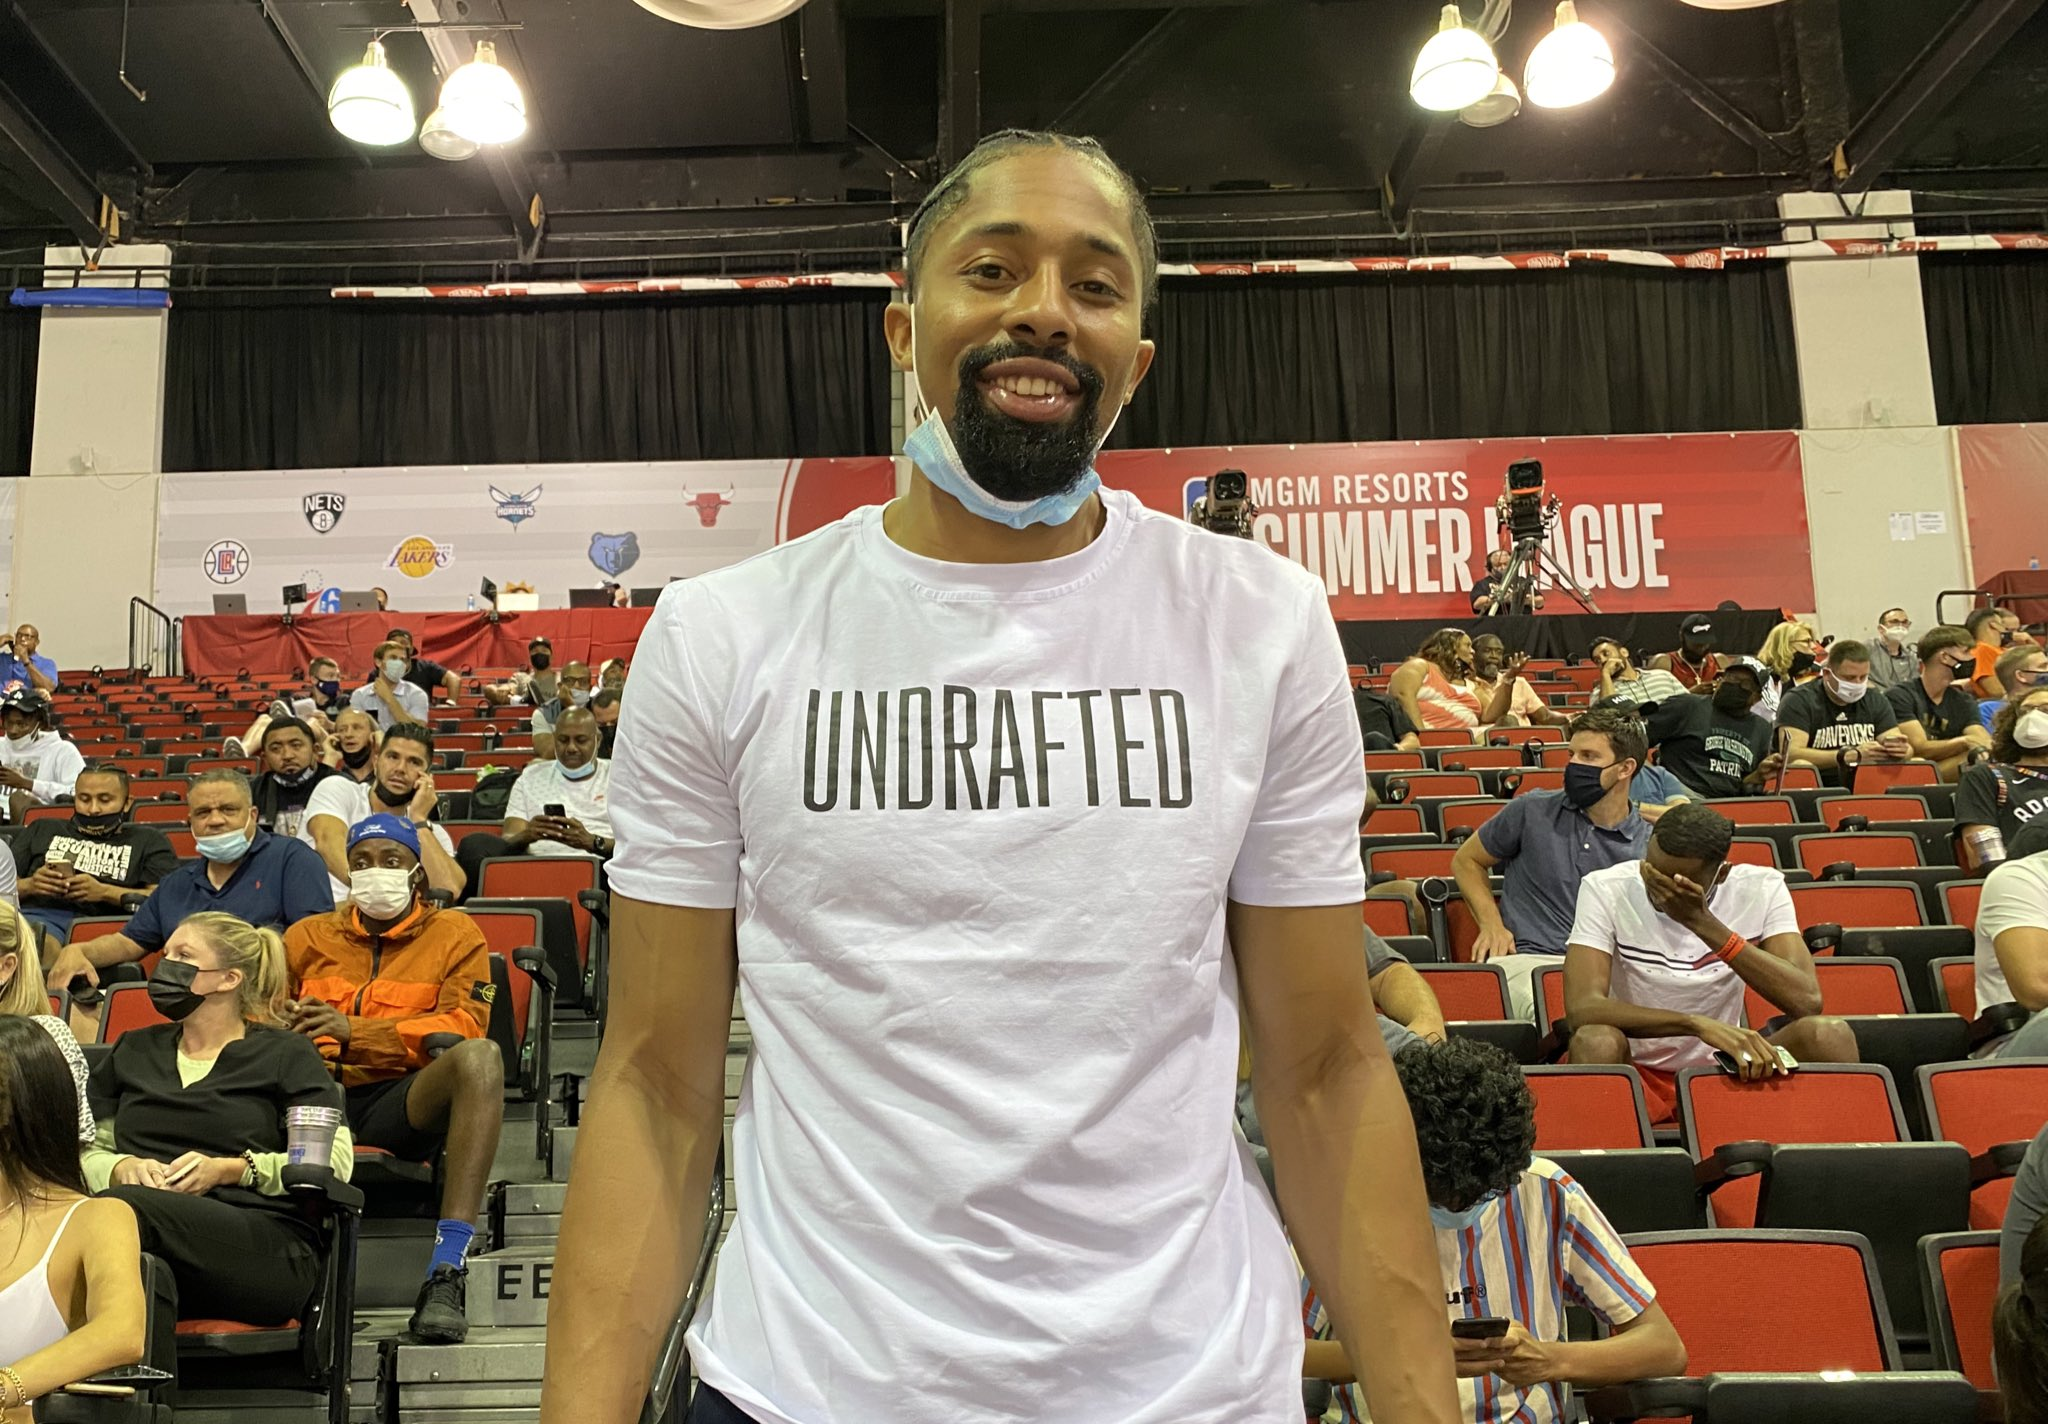 Spencer Dinwiddie Undrafted T Shirt Shop